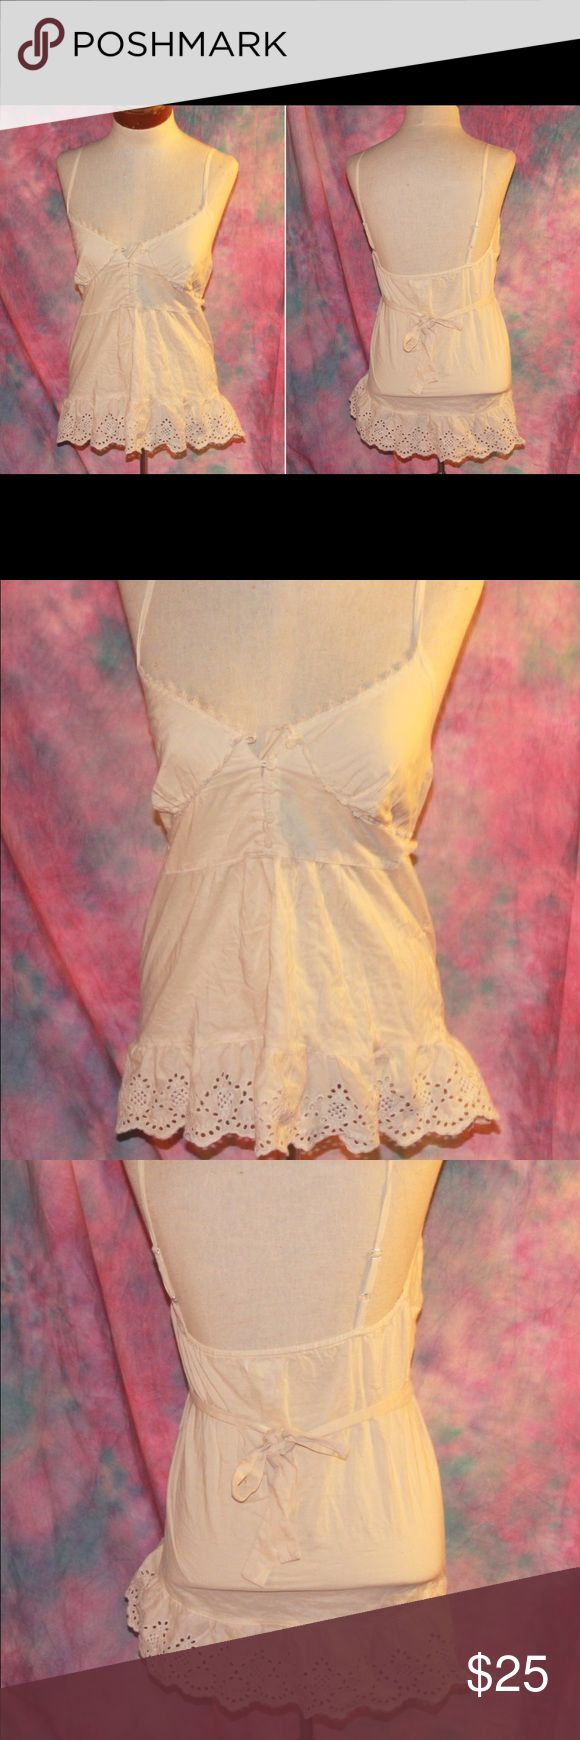 Cream tan beige vintage style cami eyelet lace top This one of a kind camisole is a must have this season. Features lace trimming. Eyelet design at hem, adjustable straps, top front button closure, empire waistline, attached waist tie. Never worn. Tops Camisoles